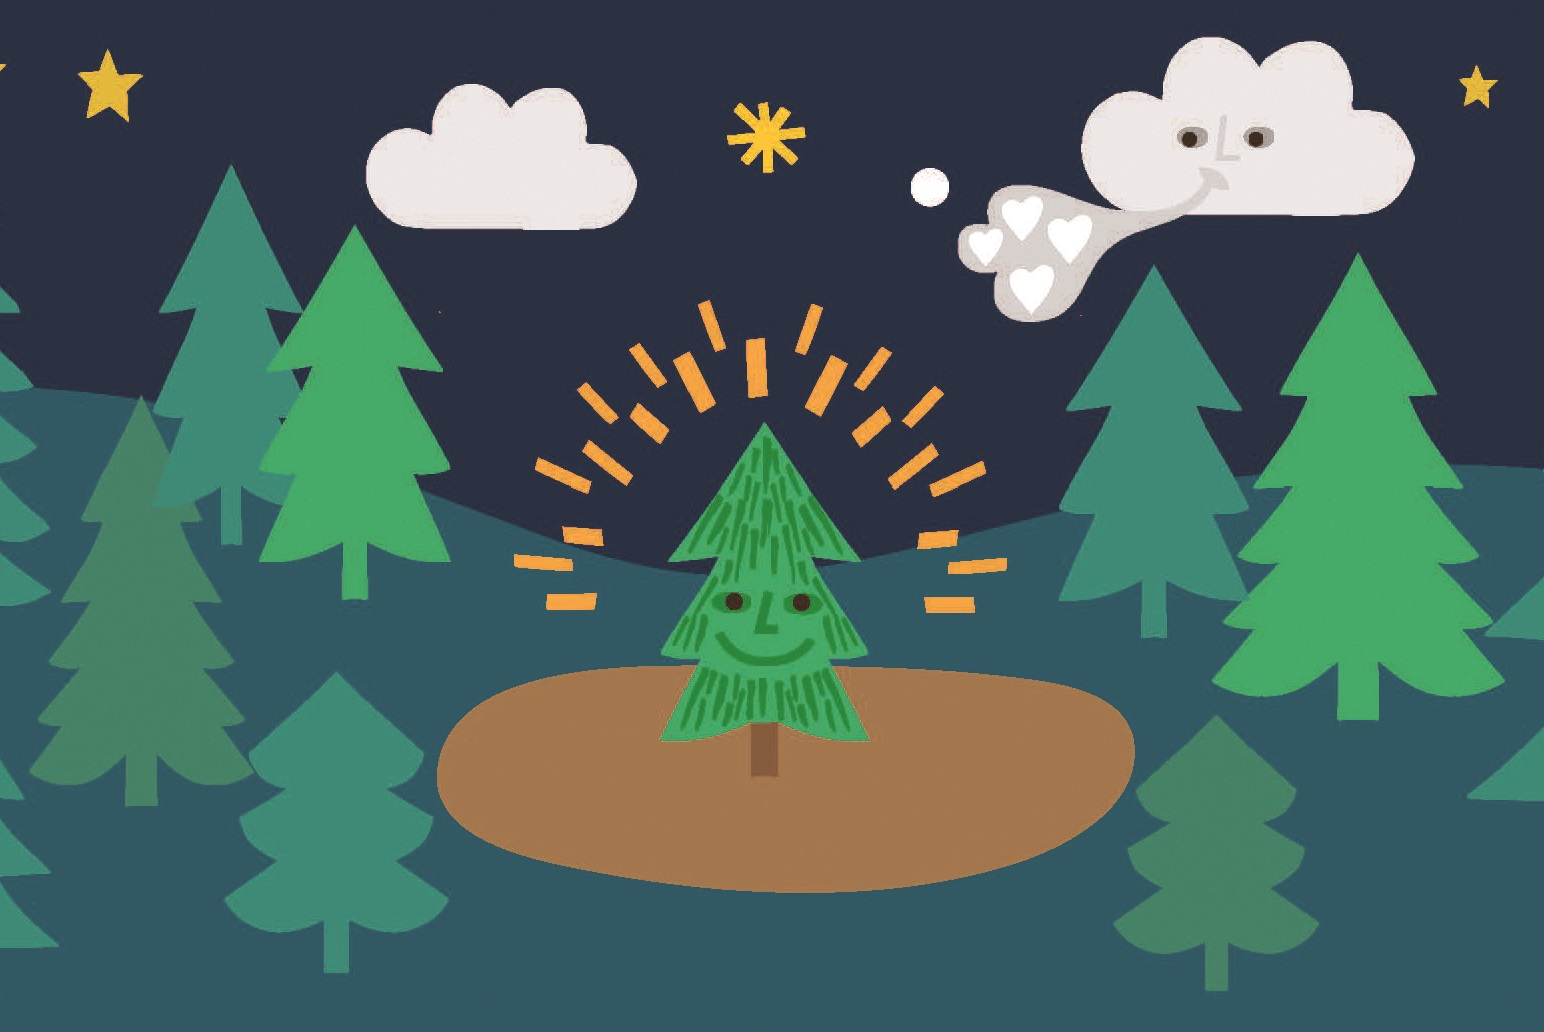 Illustration of a small Christmas tree smiling in a forest